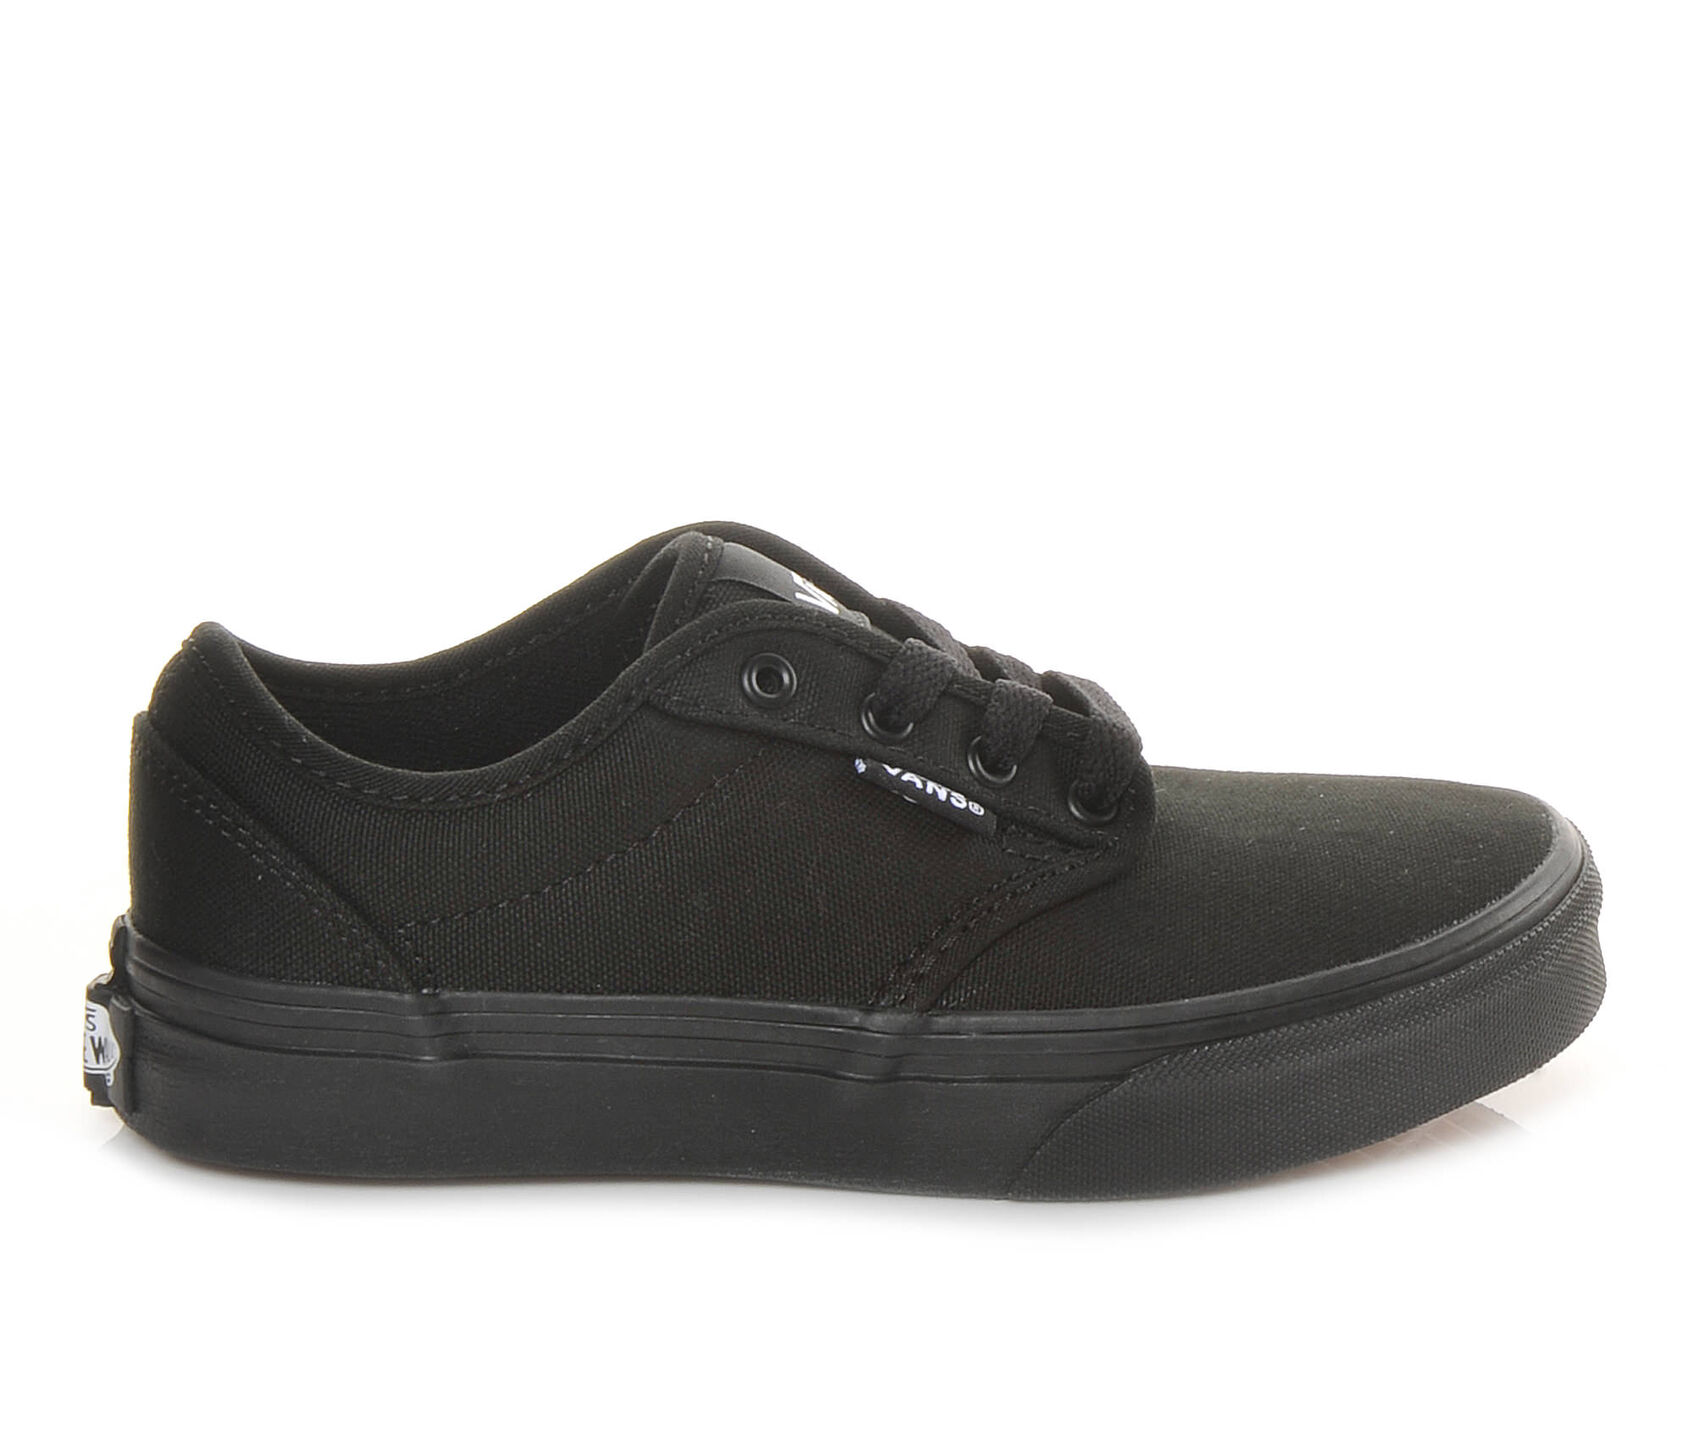 vans shoes black and white boys. vans shoes black and white boys t